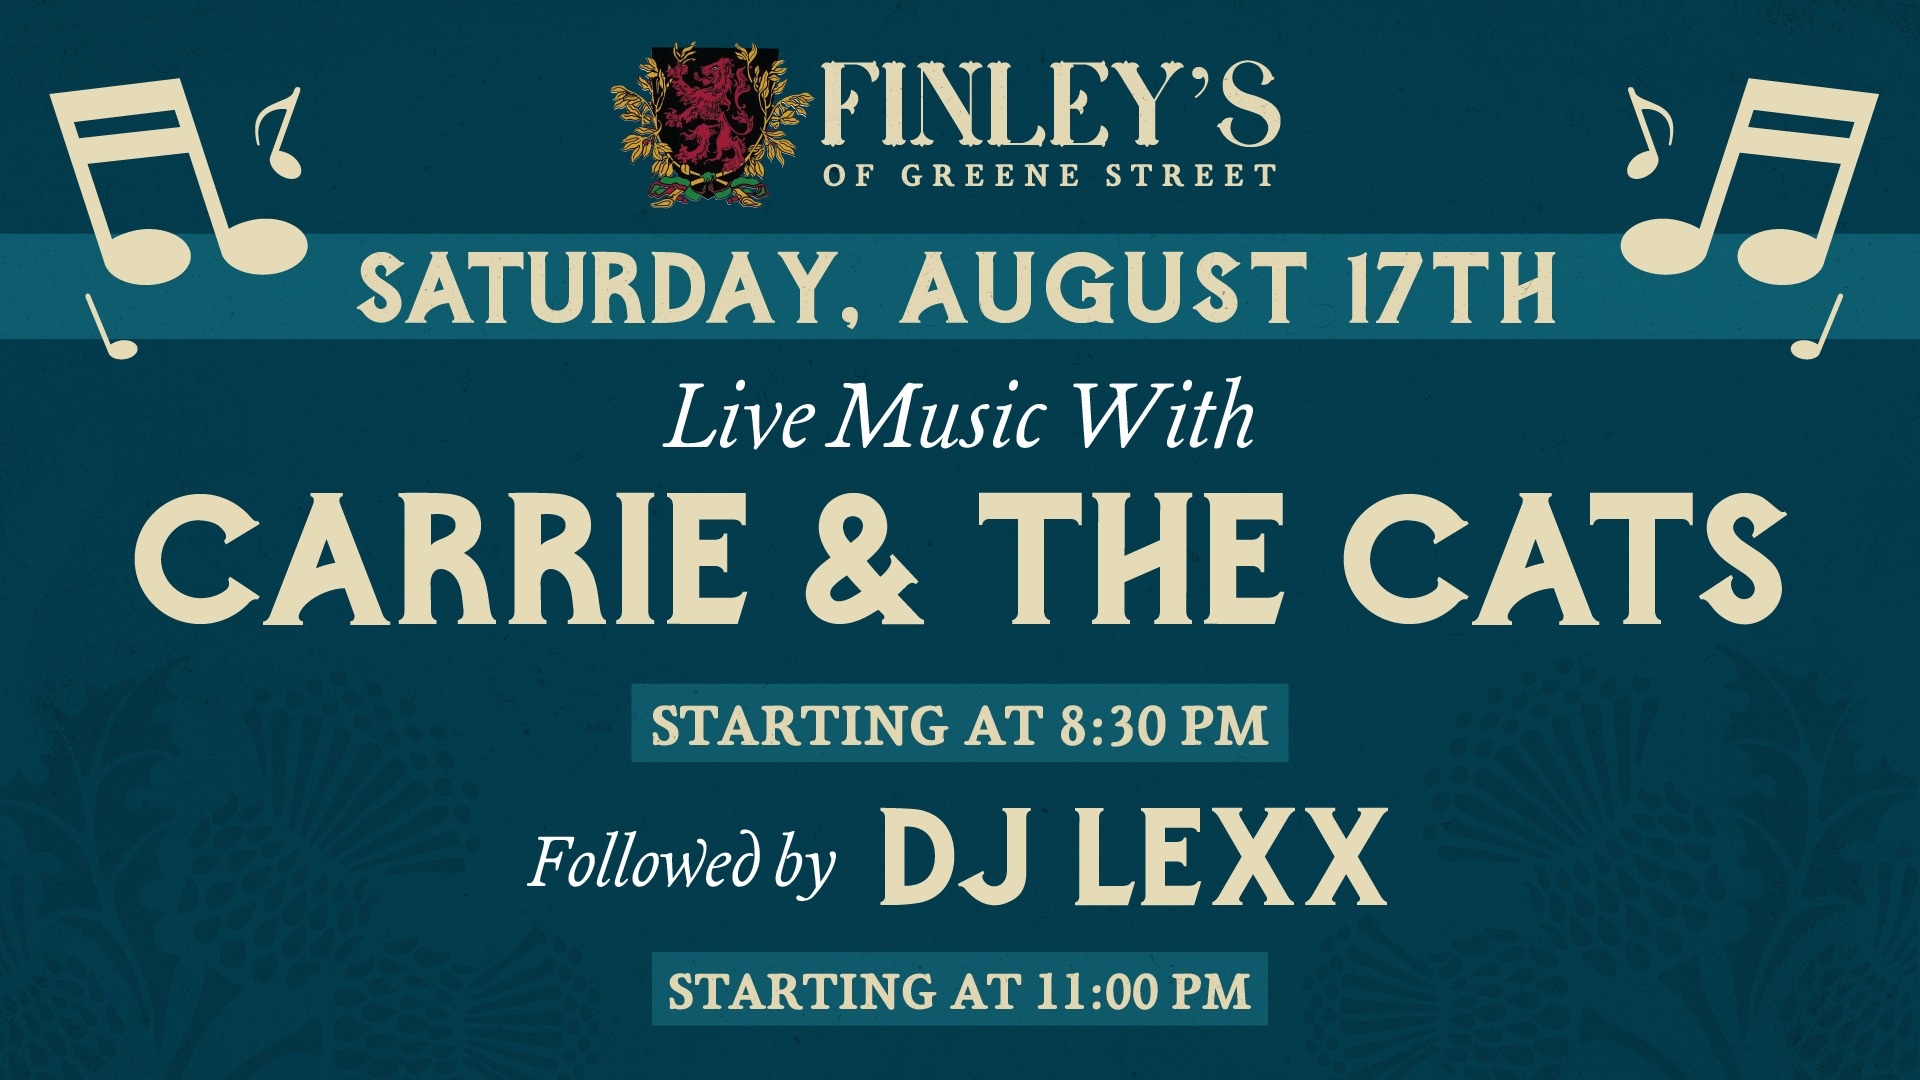 Flyer for live music with Carrie and the Cats on August 17th at 8:30pm. Followed by DJ Lexx at 11pm.